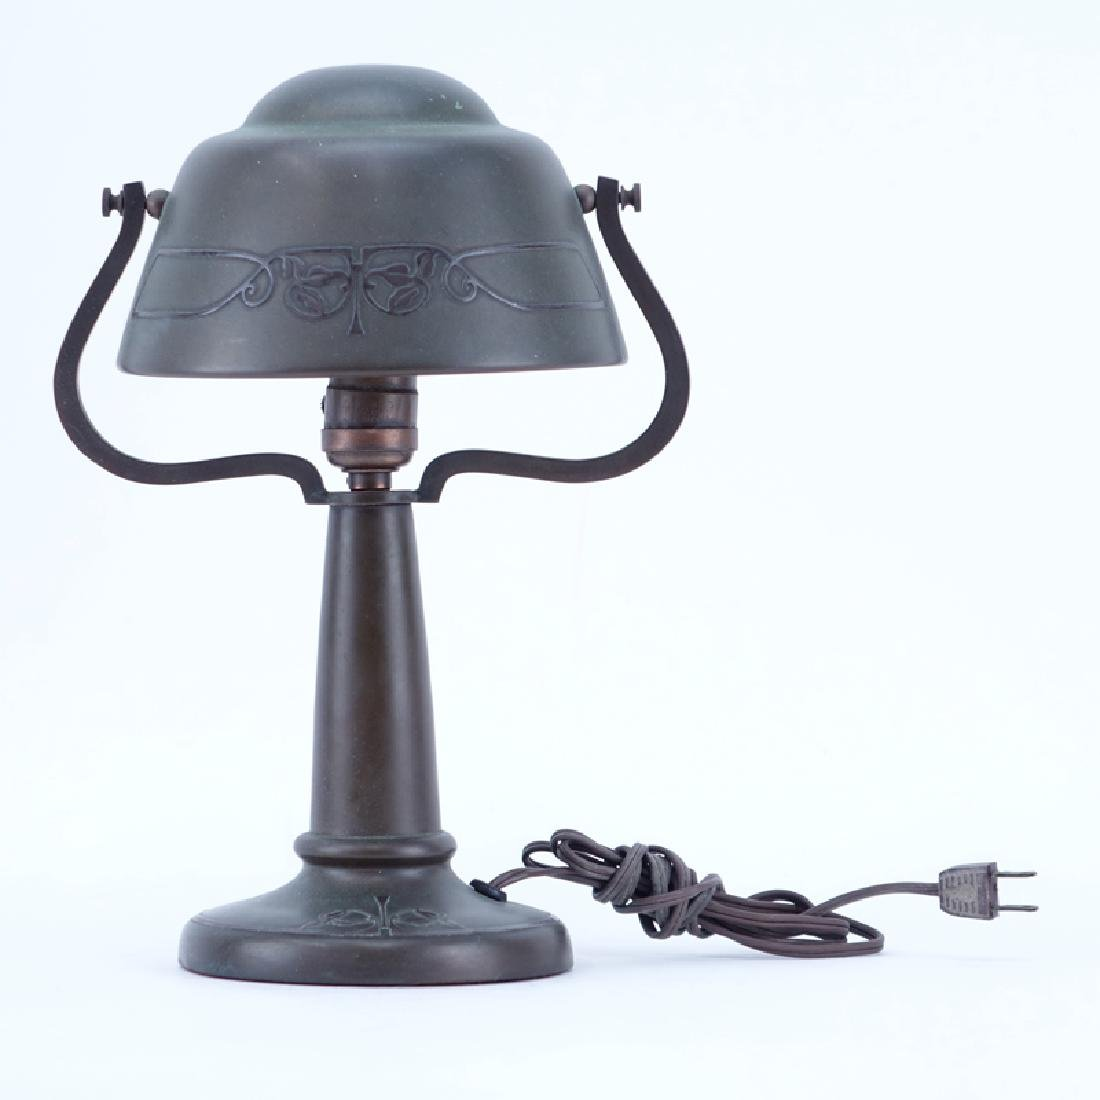 Arts and Craft Copper Desk Lamp. Remnants of a label on